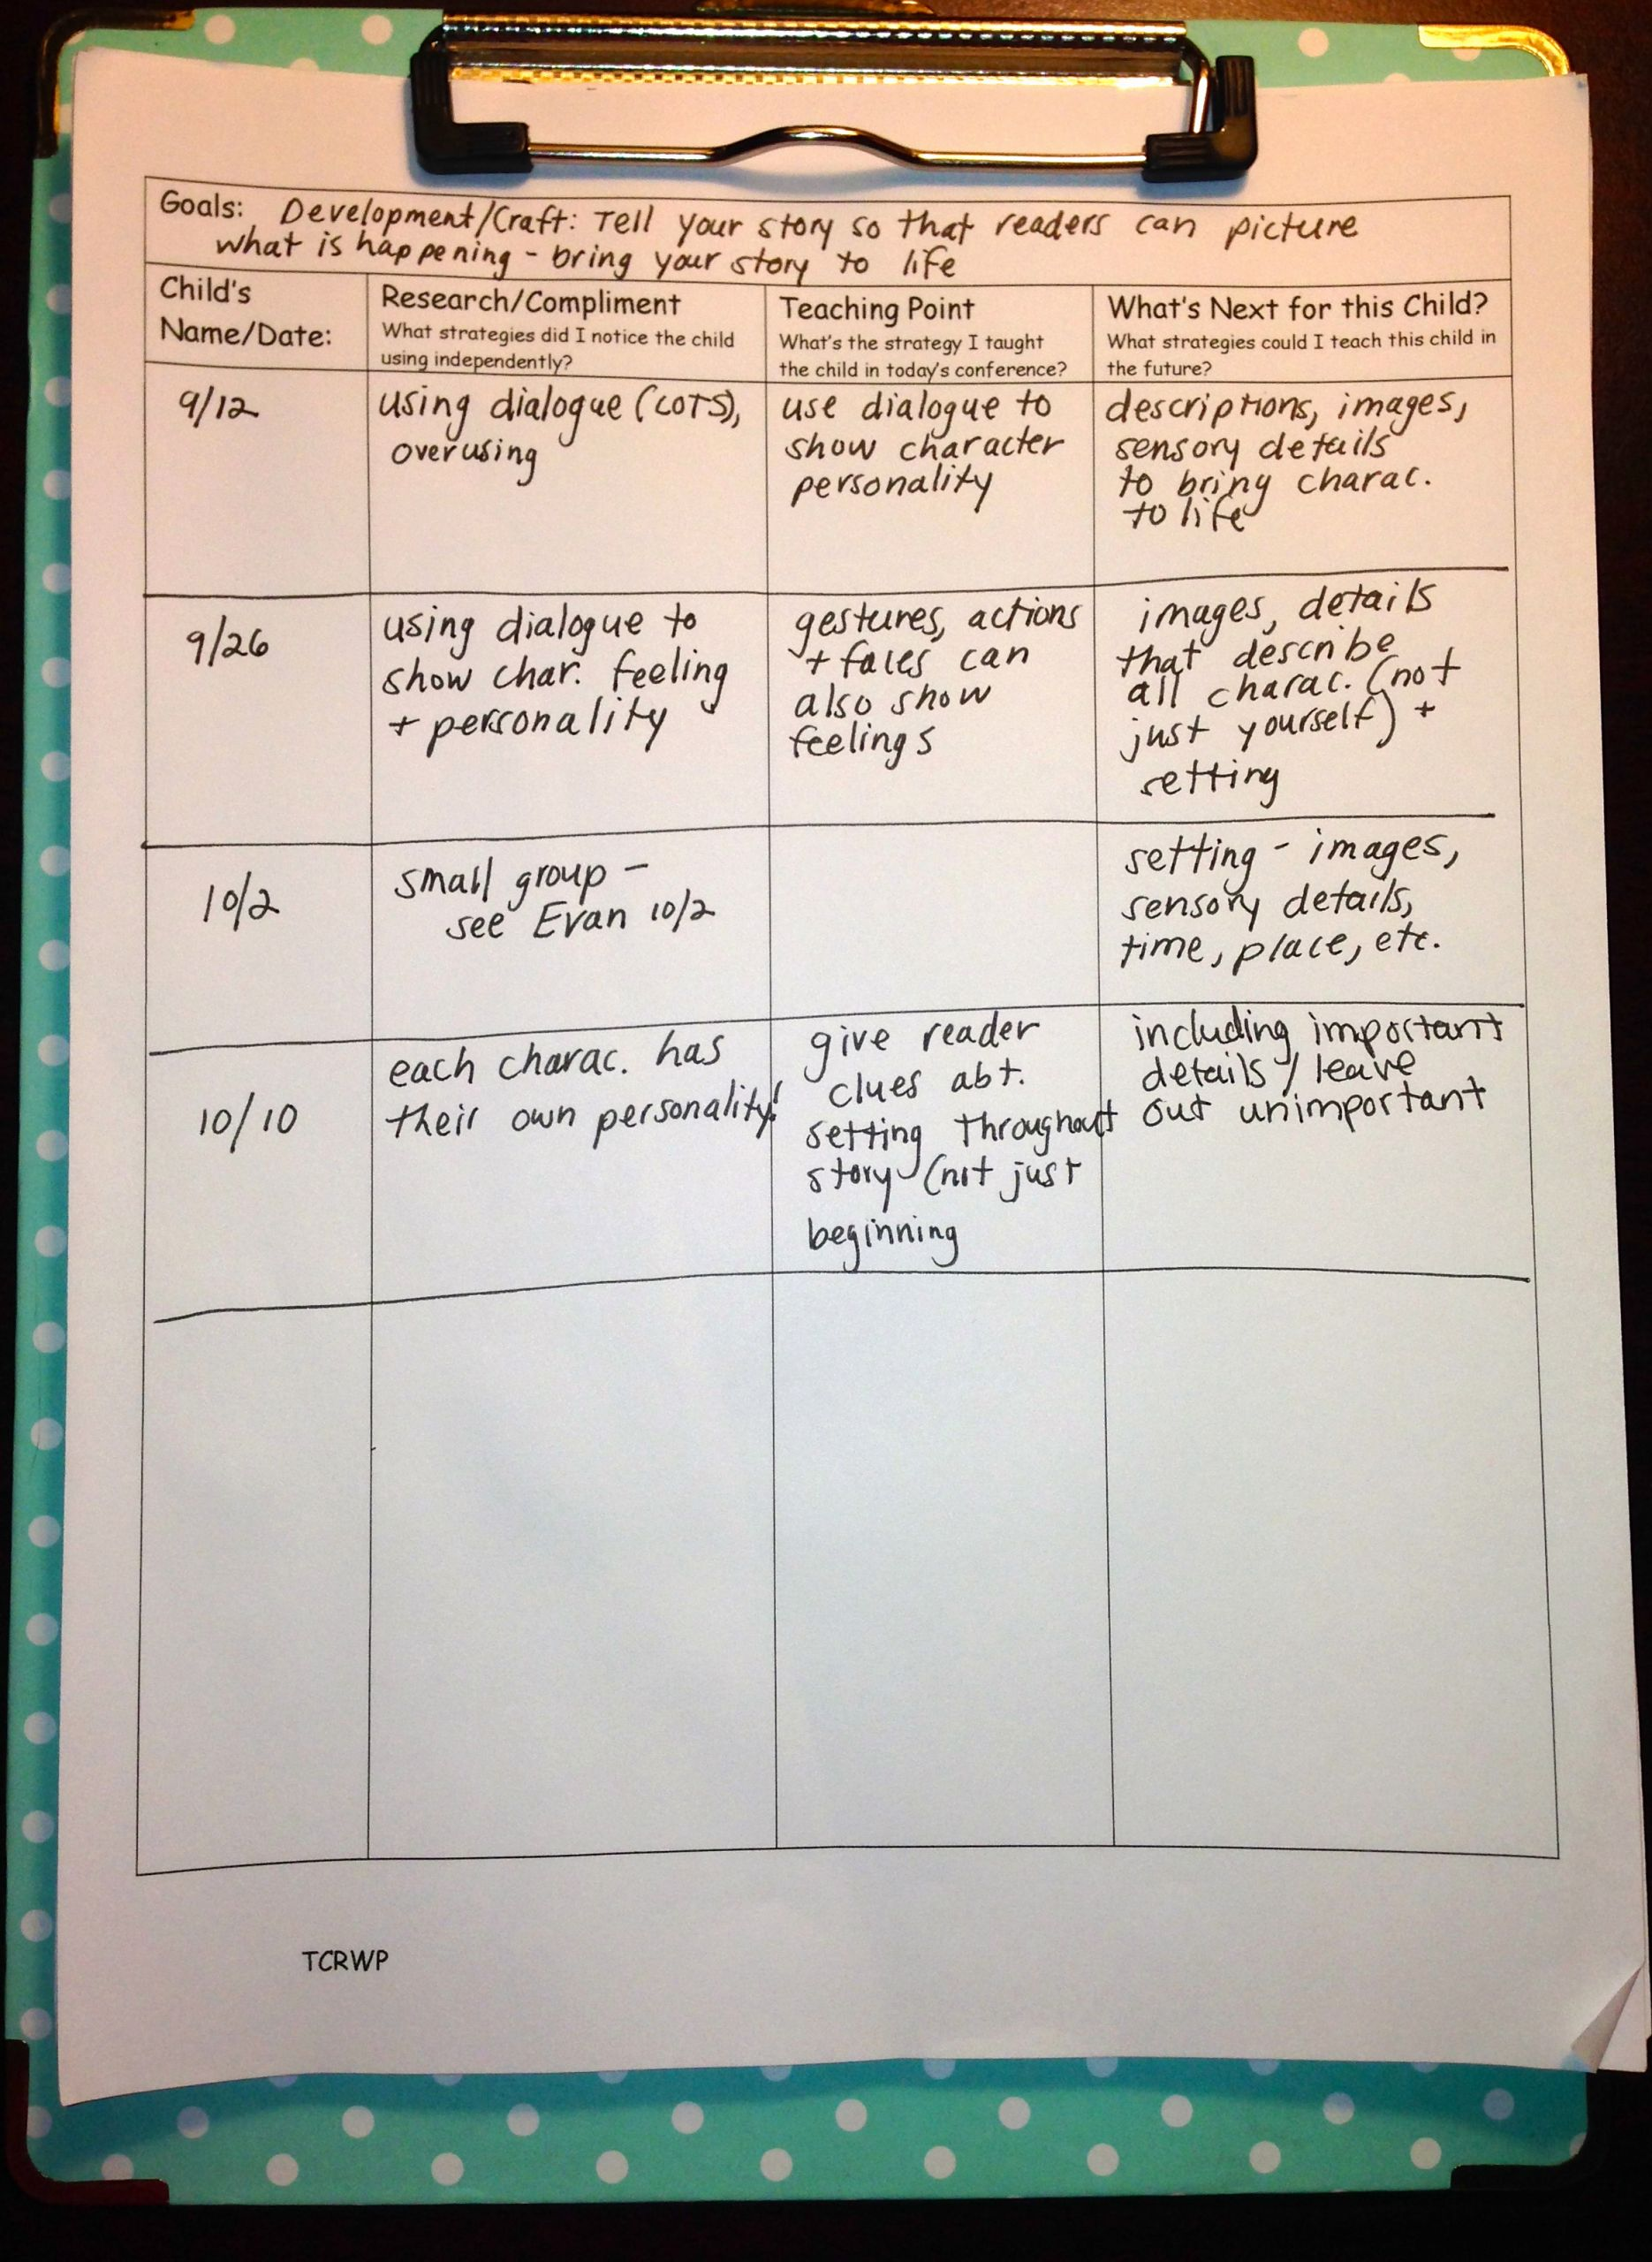 Conference Notes Template for Teachers Best Of Tailoring Our Teaching No Need to Wing It if You've Got